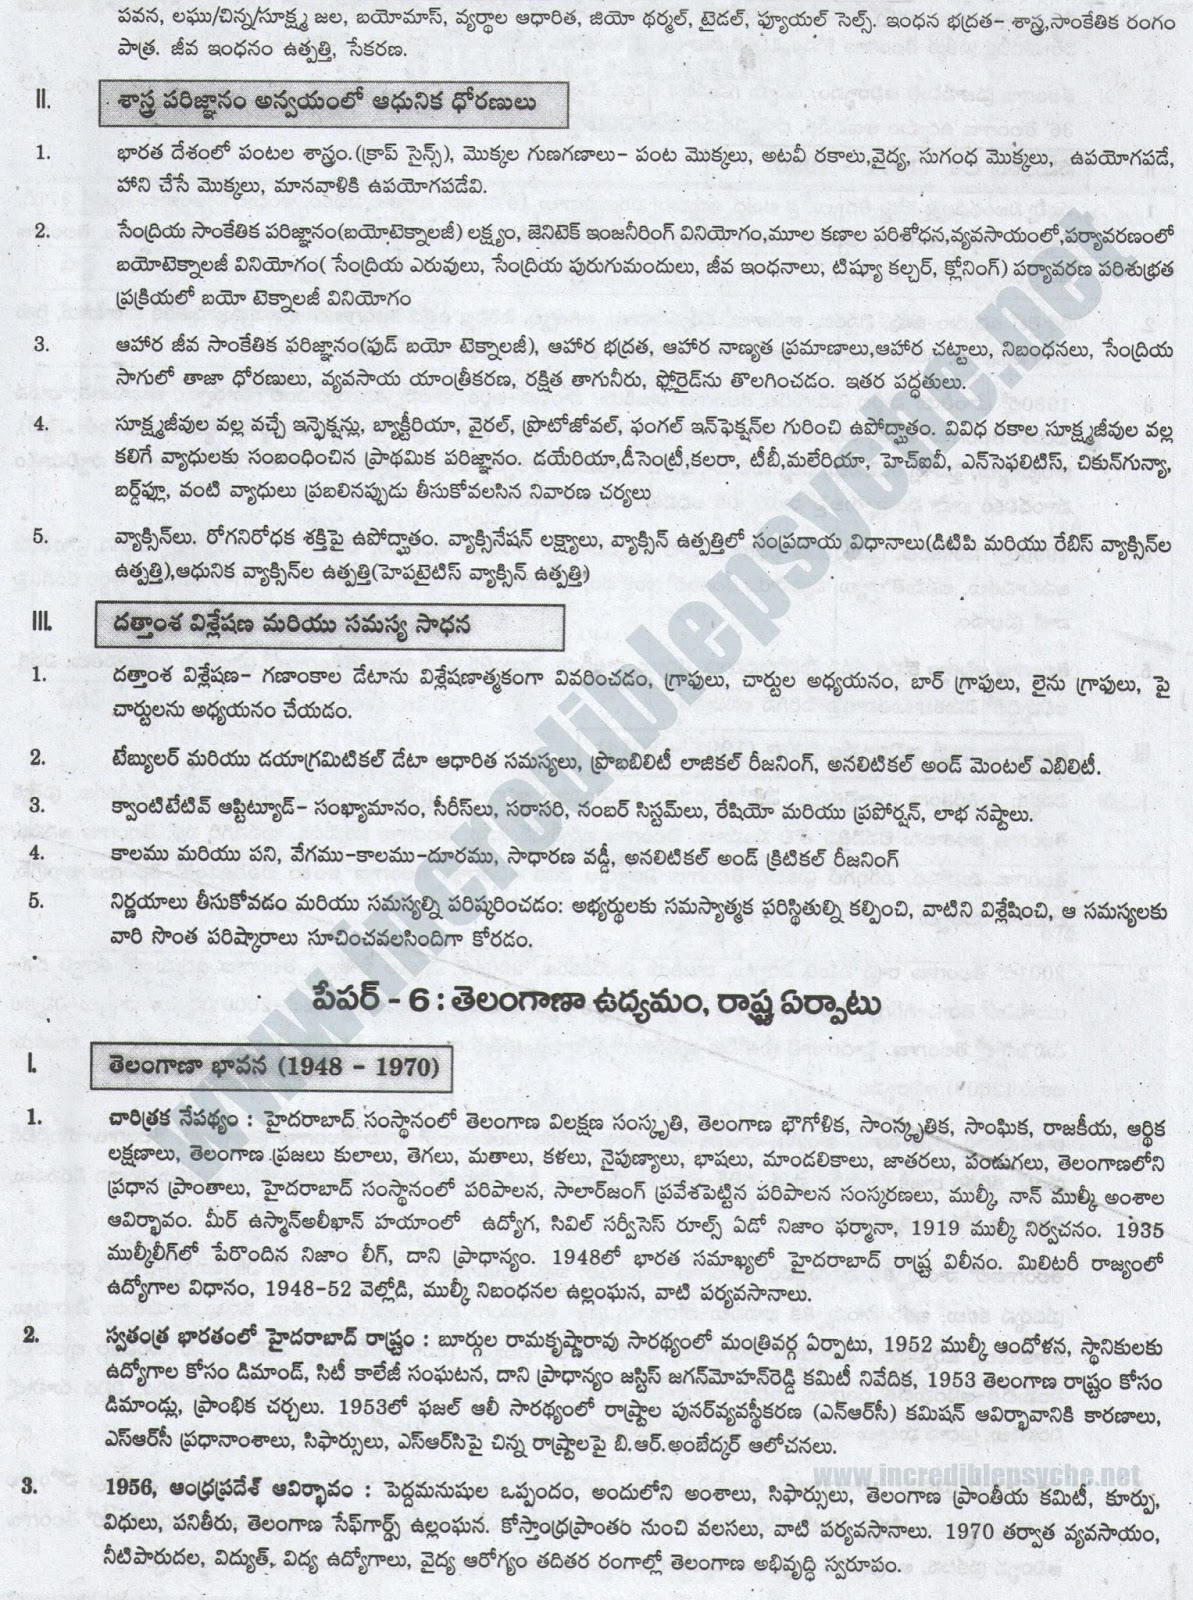 telangana tspsc group 1 exam syllabus in telugu with scheme of exam pattern detailed pattern 6